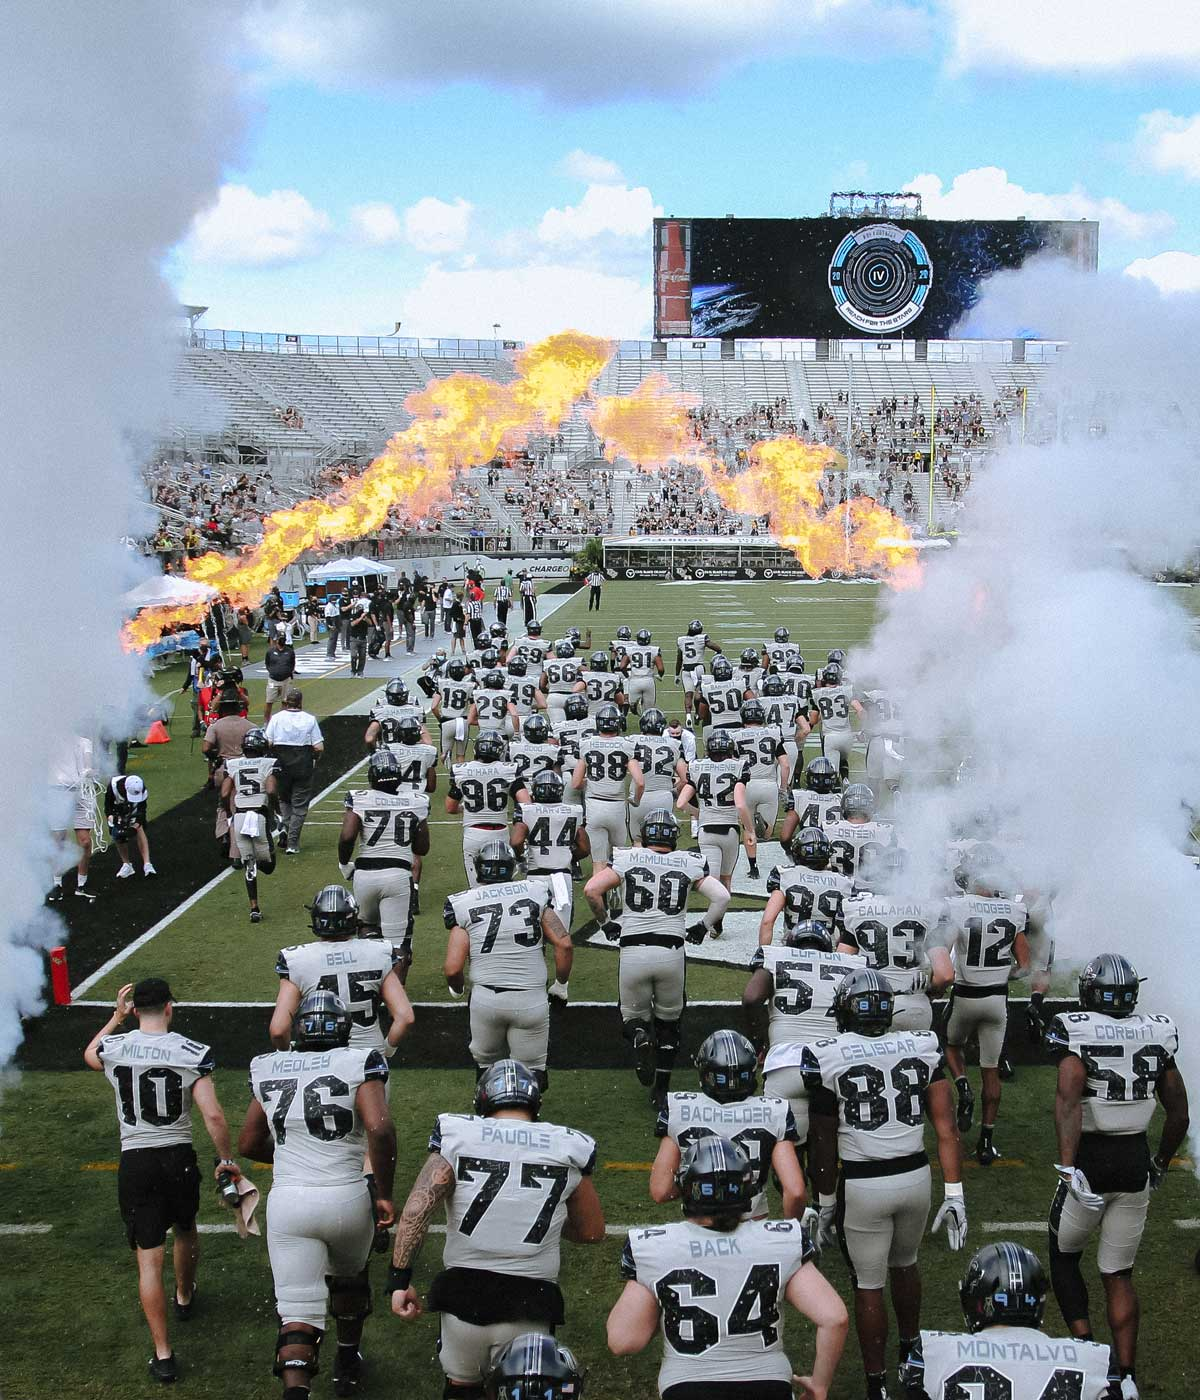 UCF football team runs onto the field with smoke and fire tunnel